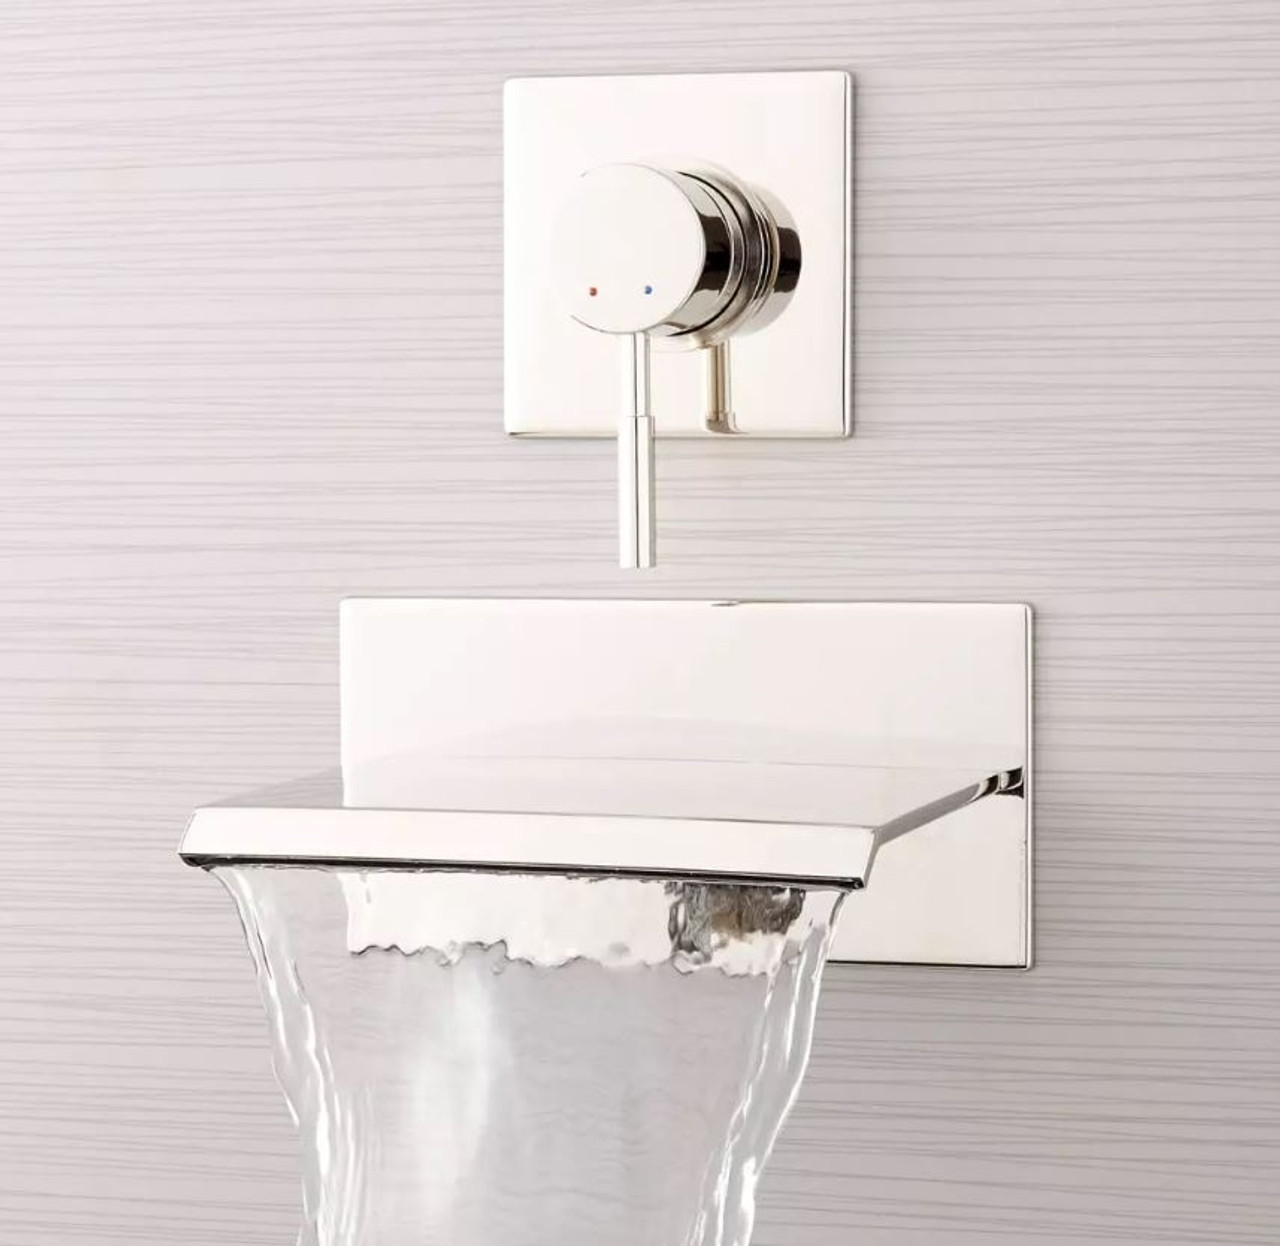 signature hardware lavelle 6 1 2 waterfall wall mounted tub filler with metal lever handle diverter